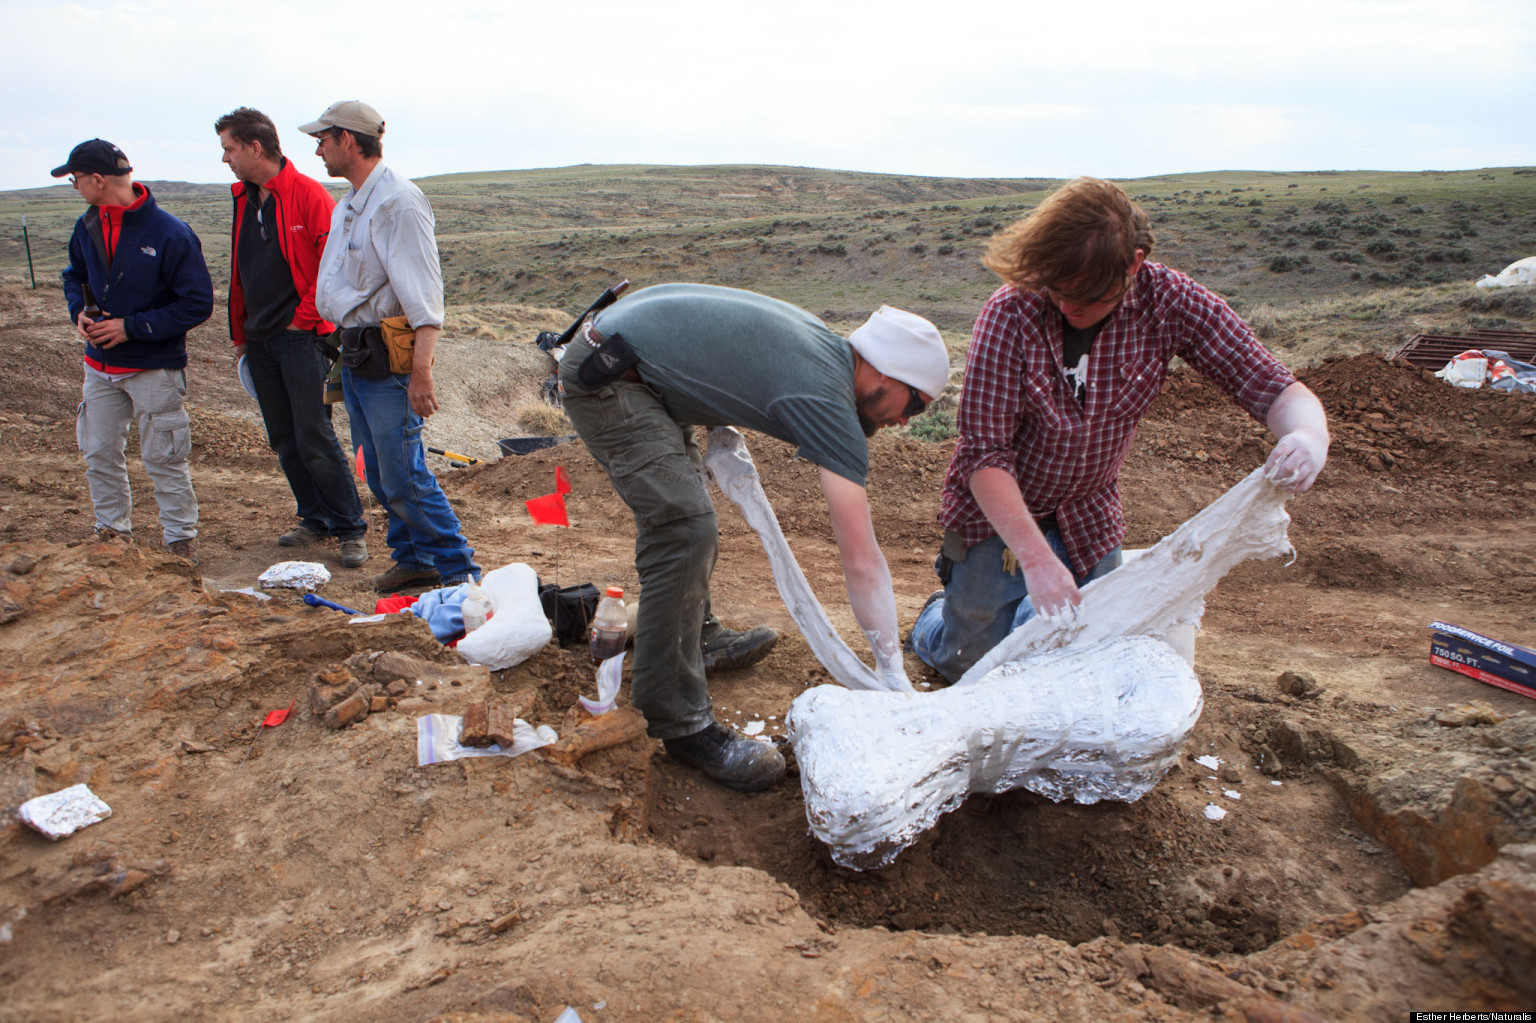 UNEARTHED: Beloved Dinosaur's Nearly Intact Skeleton